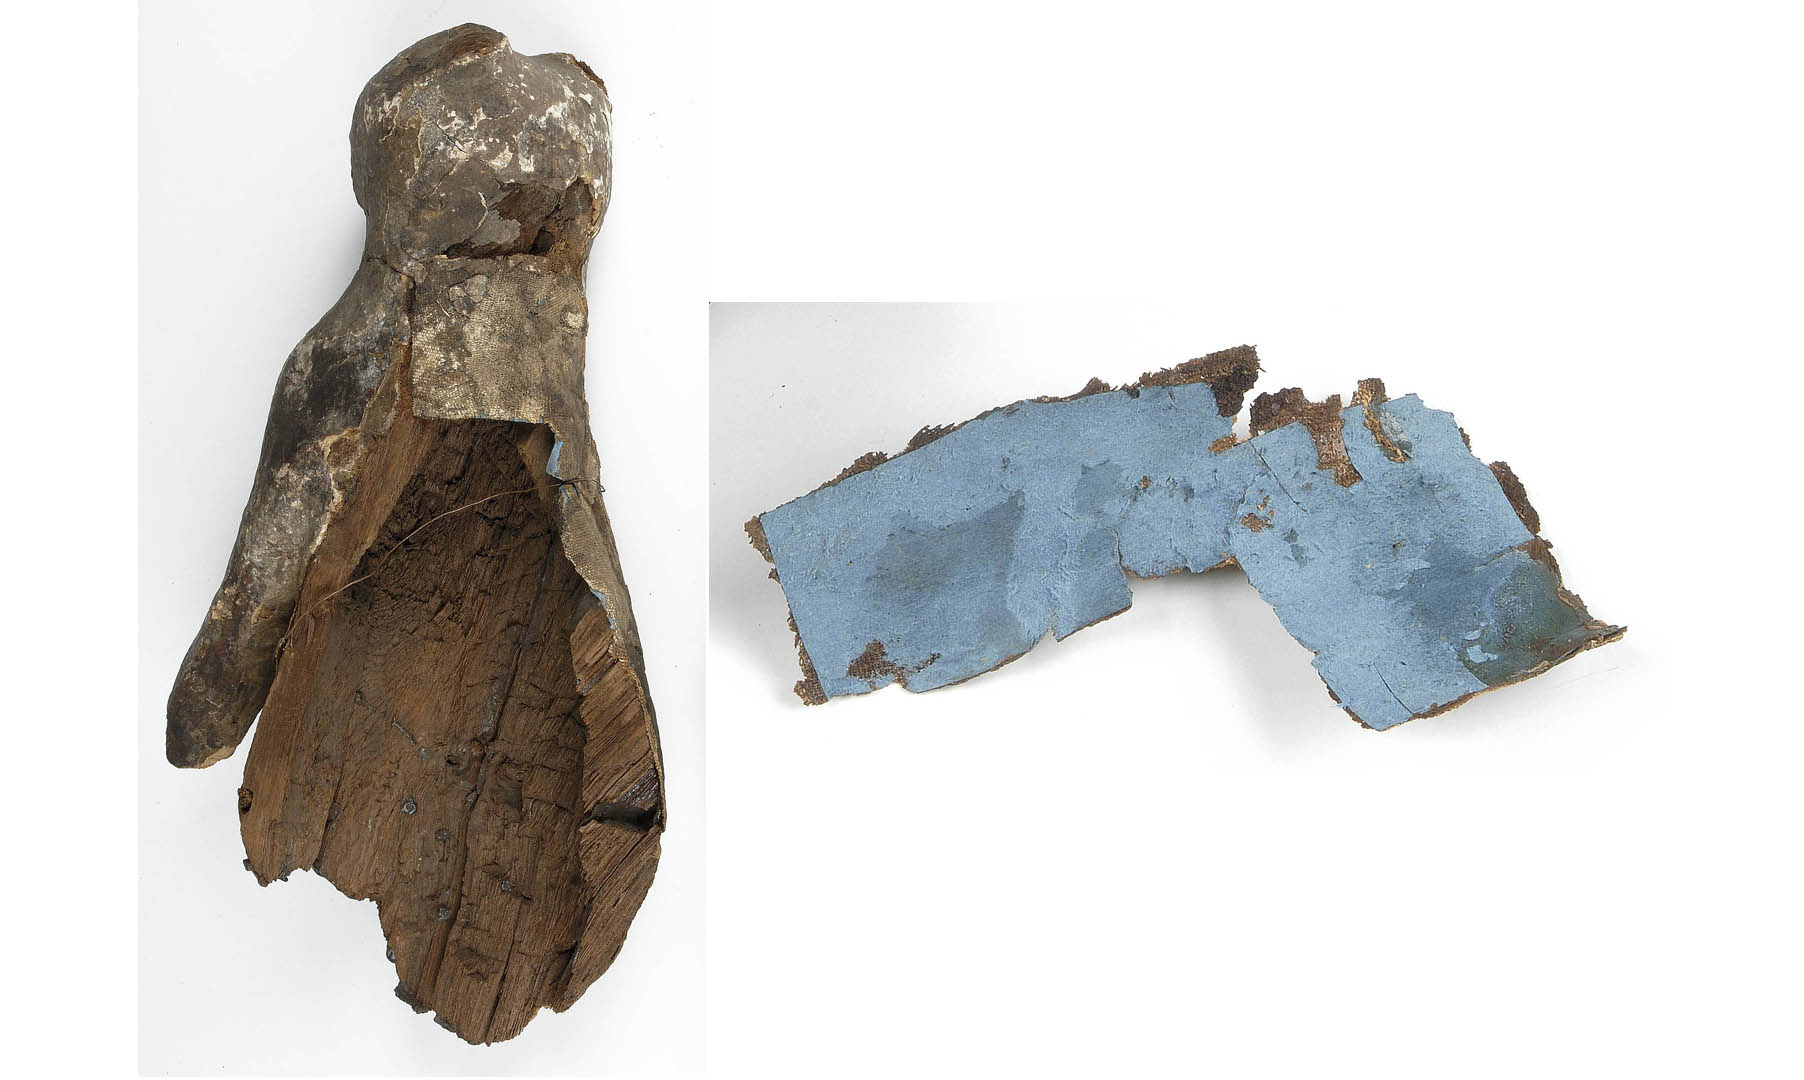 fig 6.The sarcophagus had suffered several repairs in the past. The hole on the scruff of the figure had been filled with blue cardboard and covered with a piece of the original linen fabric.